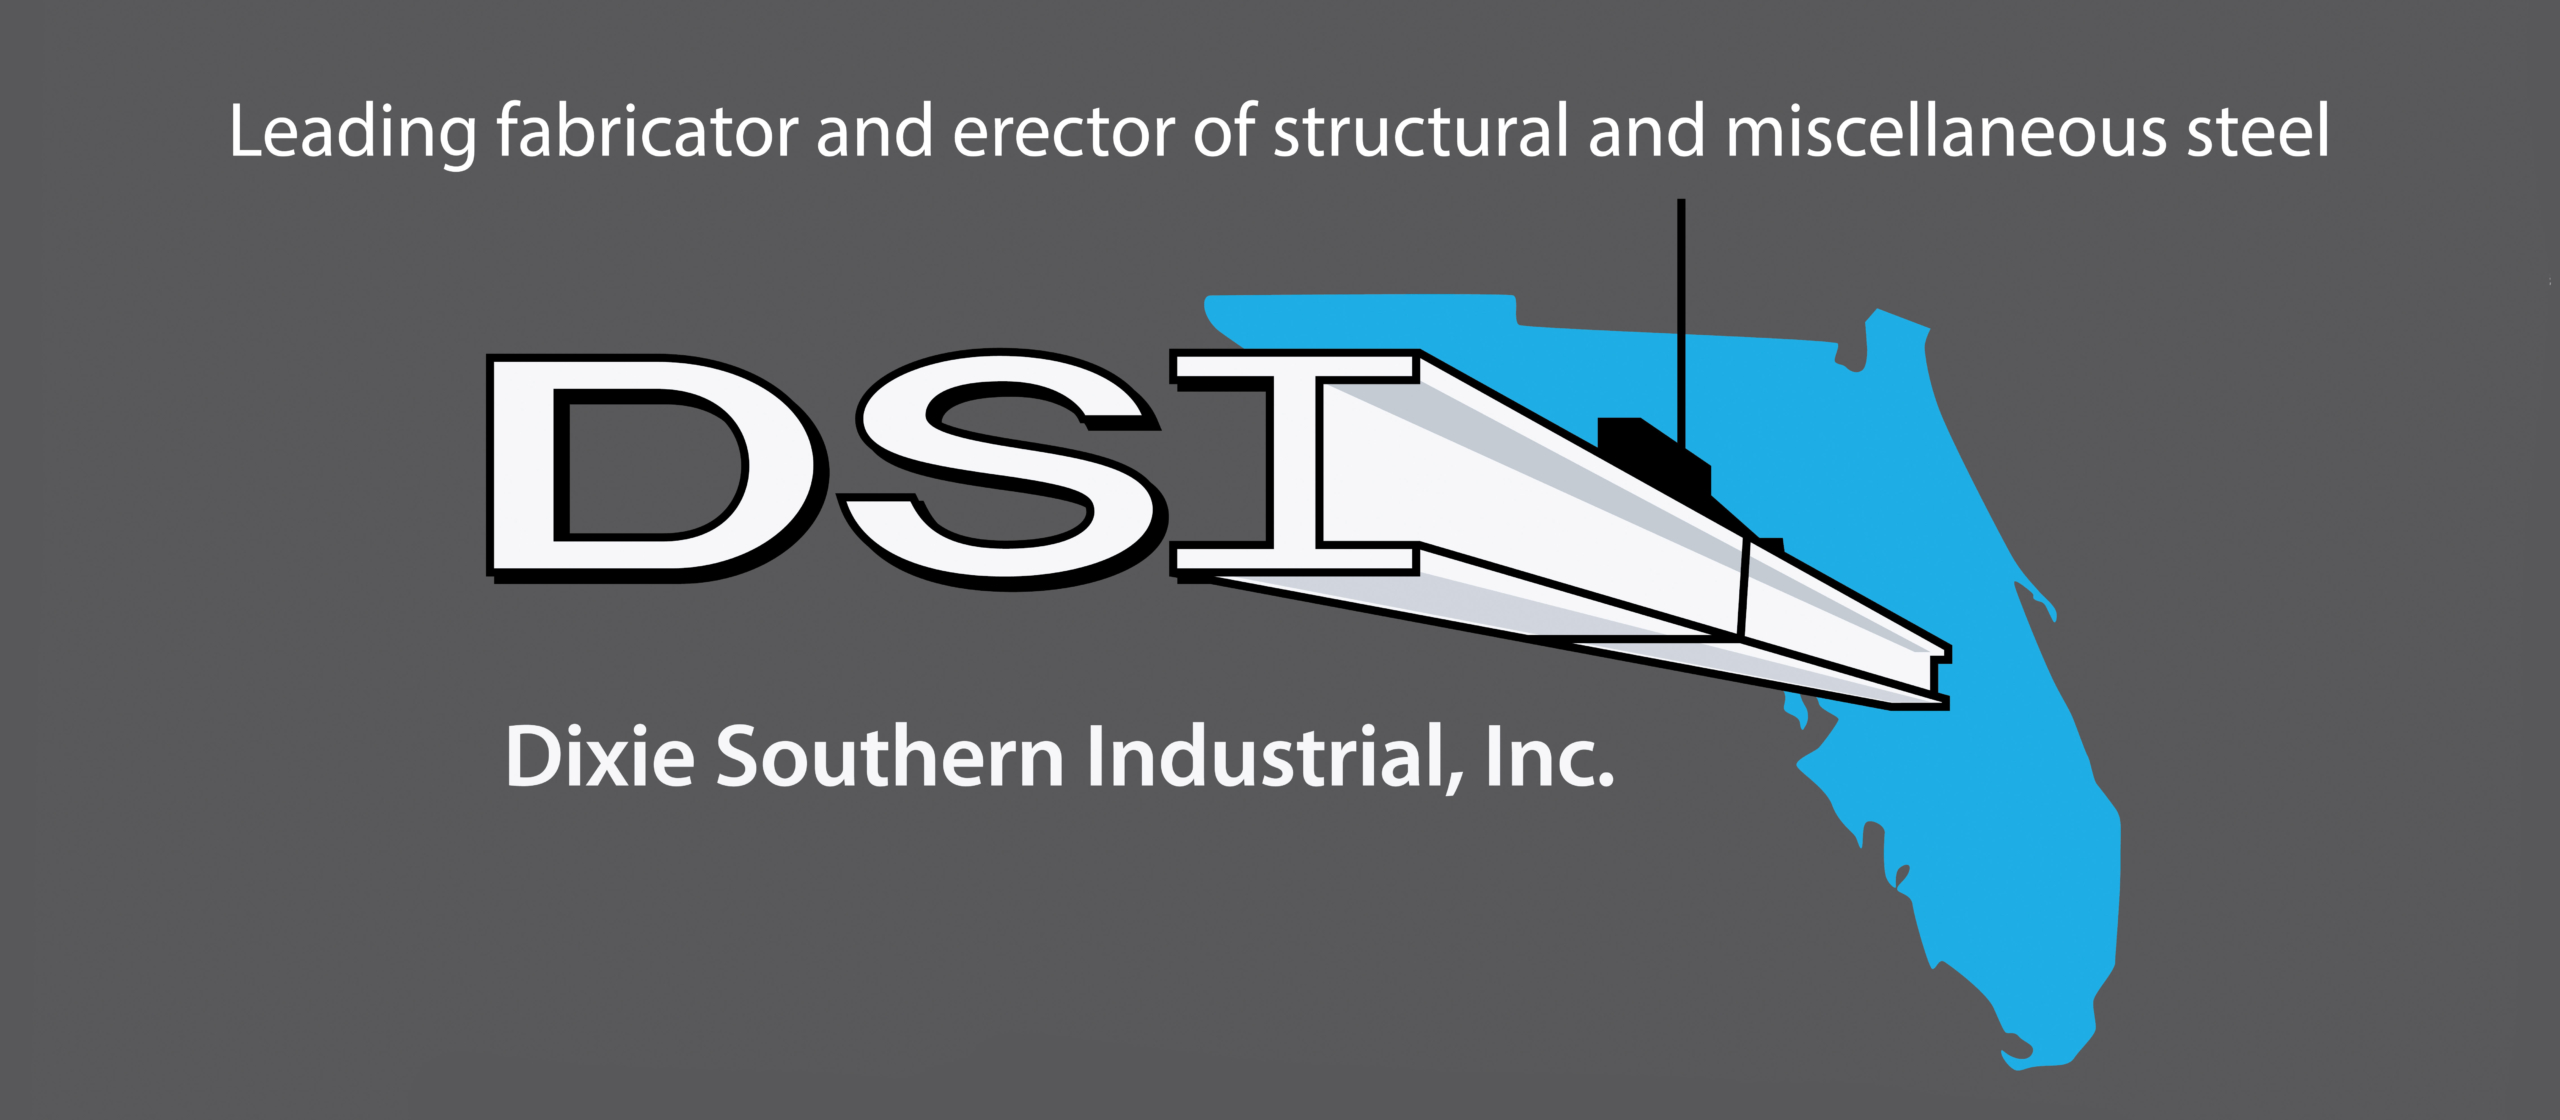 Dixie Southern Industrial, Inc. logo